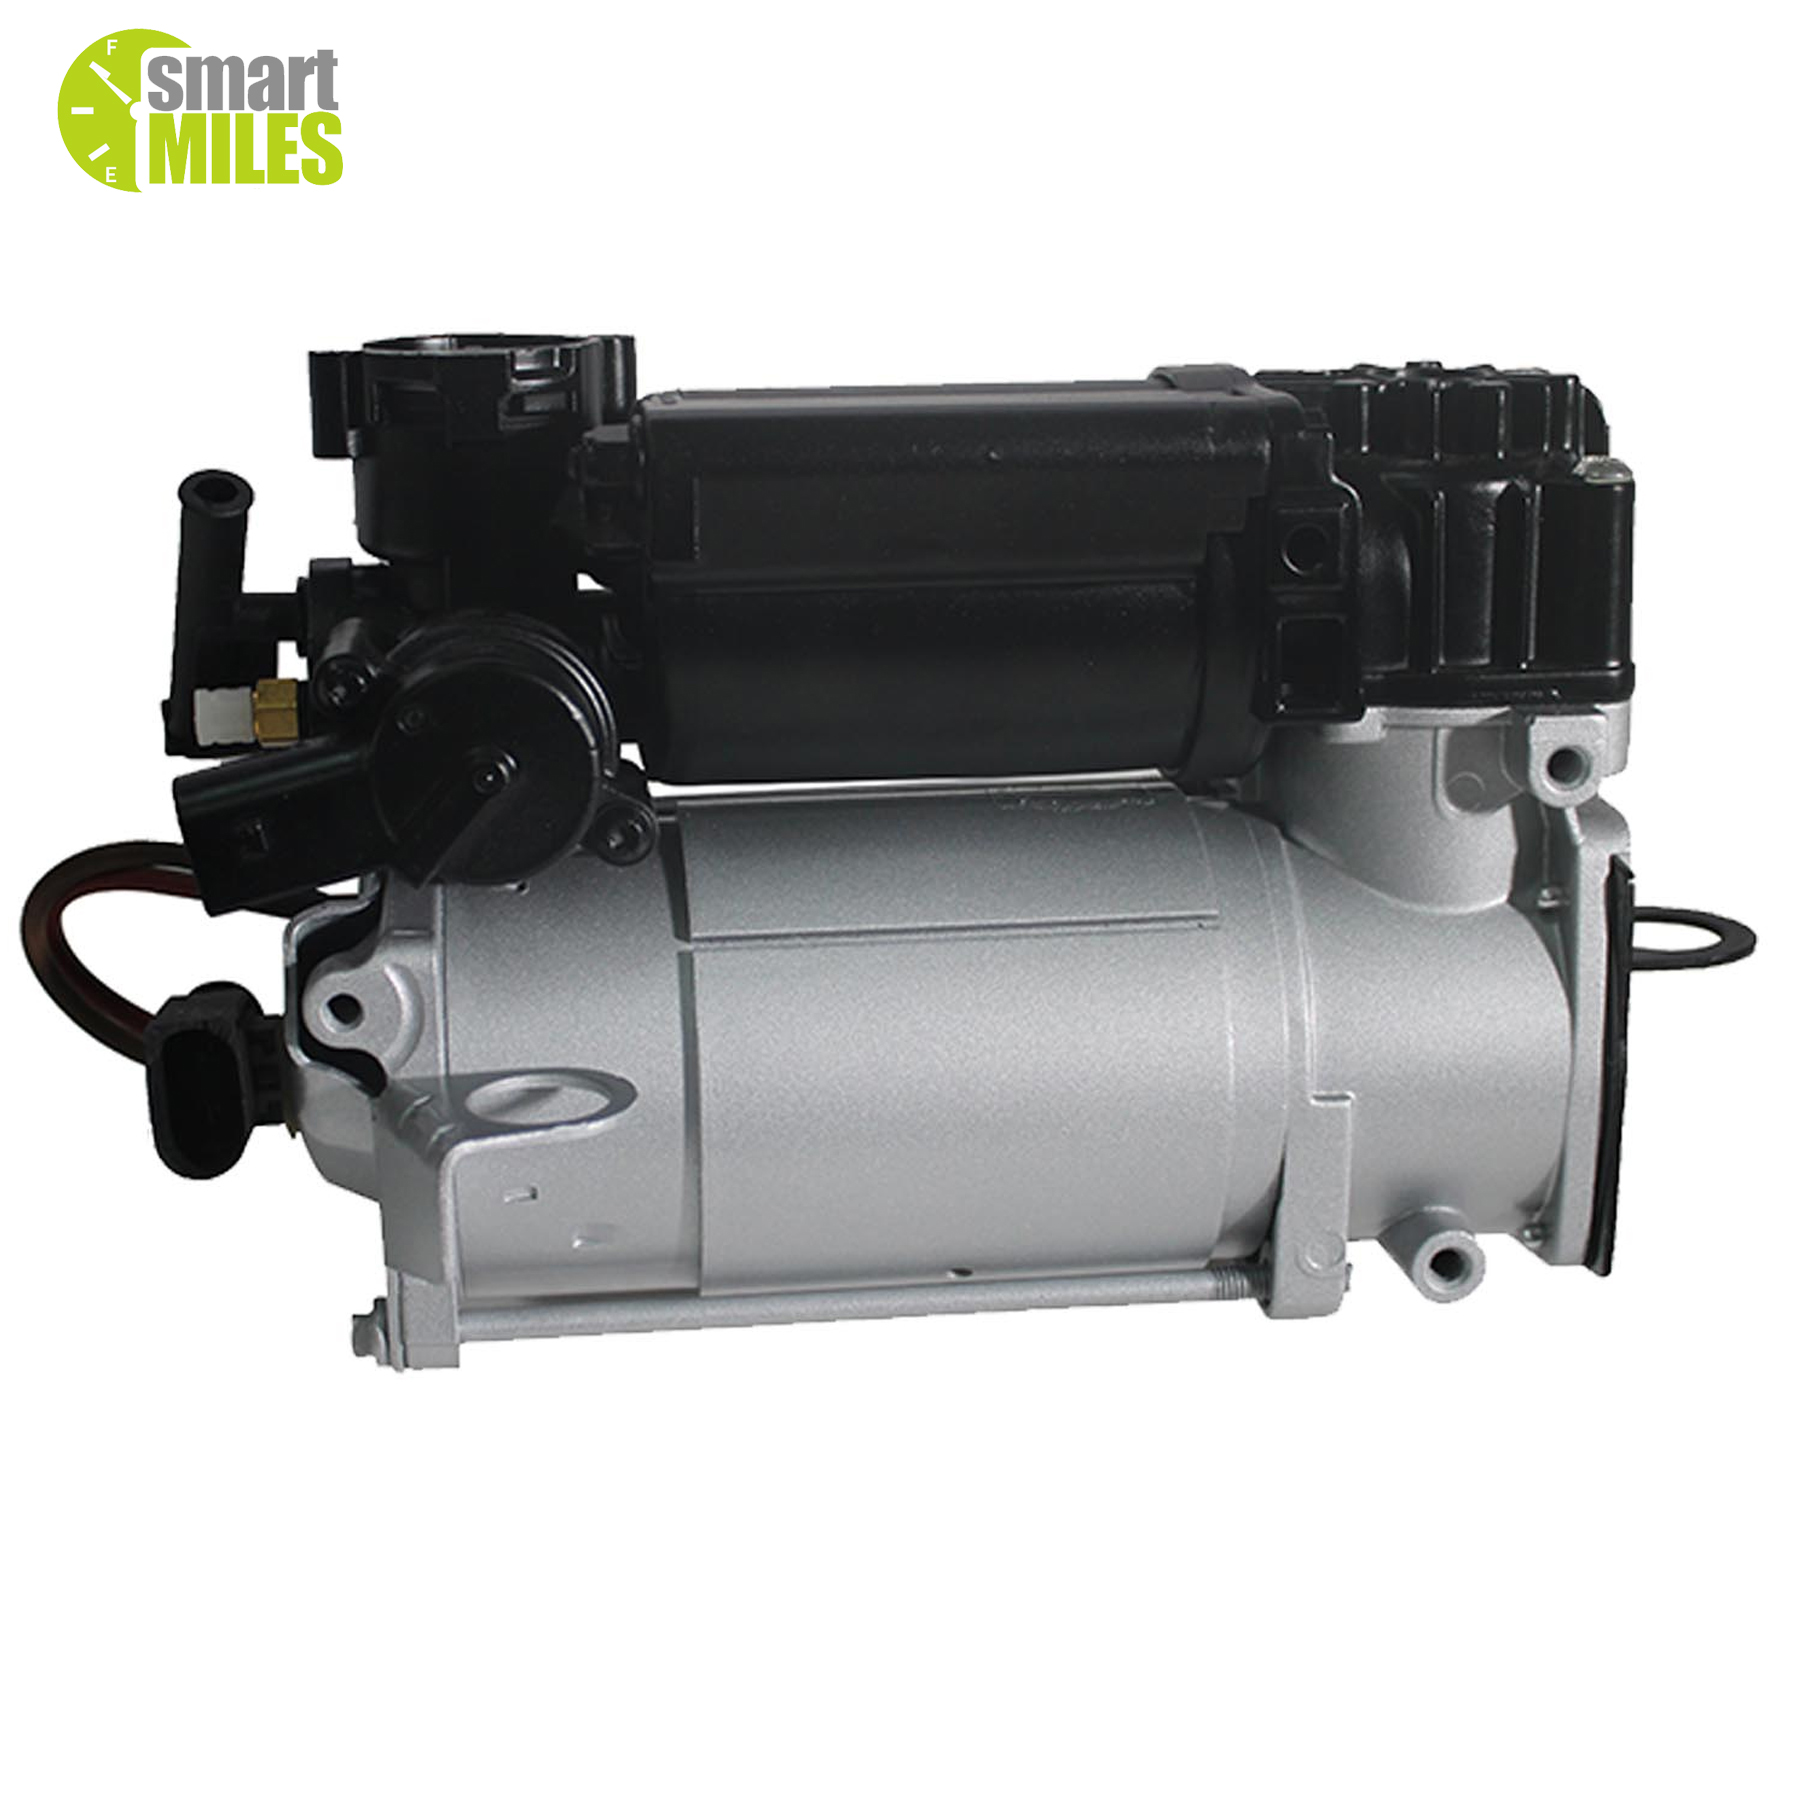 hight resolution of a2113200304 air suspension compressor for mercedes benz cls500 cls550 e320 e350 e430 e500 e550 s63 s350 s430 s500 s600 amg cls55 amg cls63 amg e55 amg e63